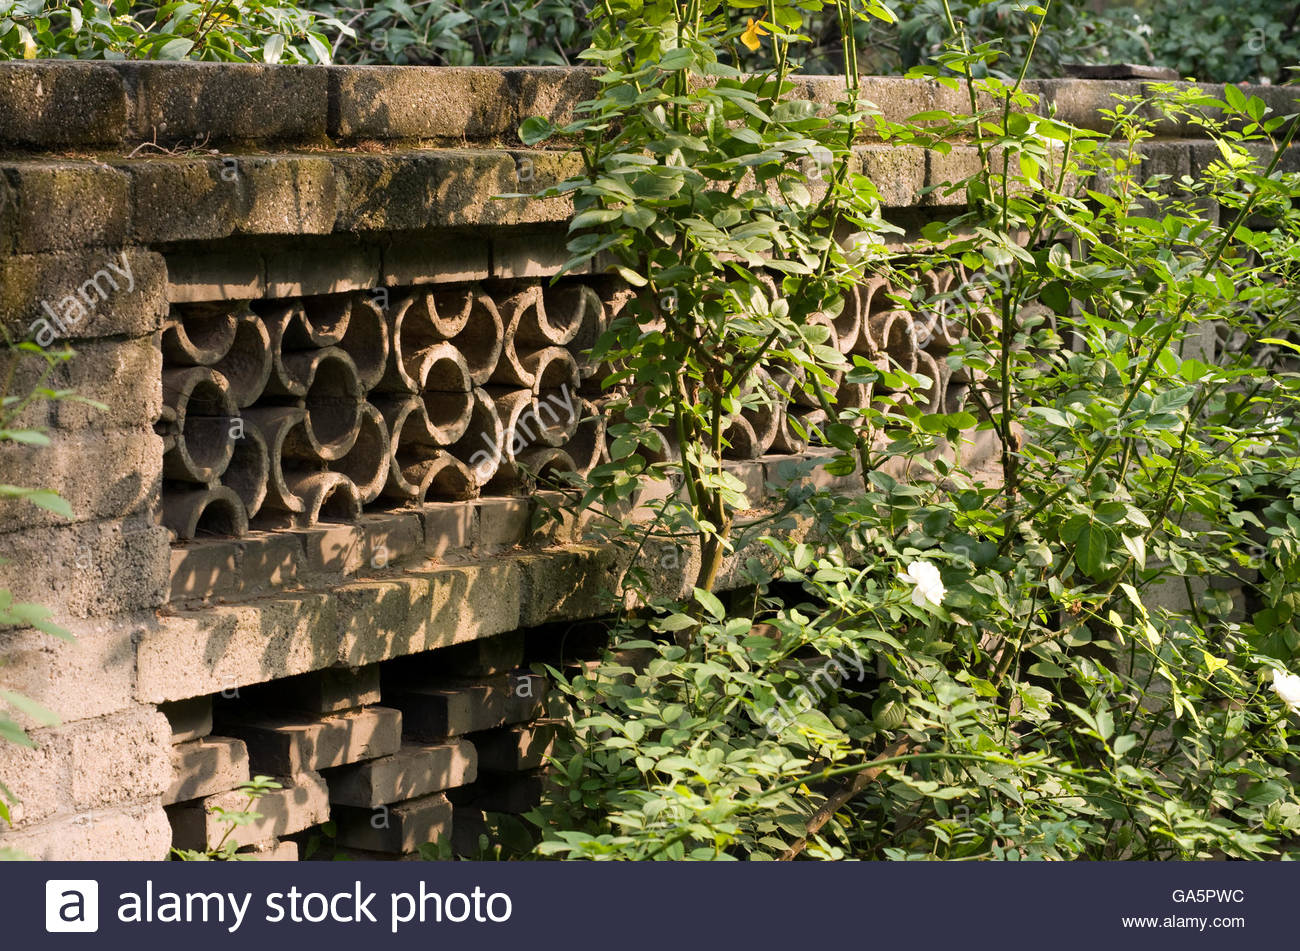 A Decorative Garden Wall In Jingshan Park In Beijing, China.   Stock Image